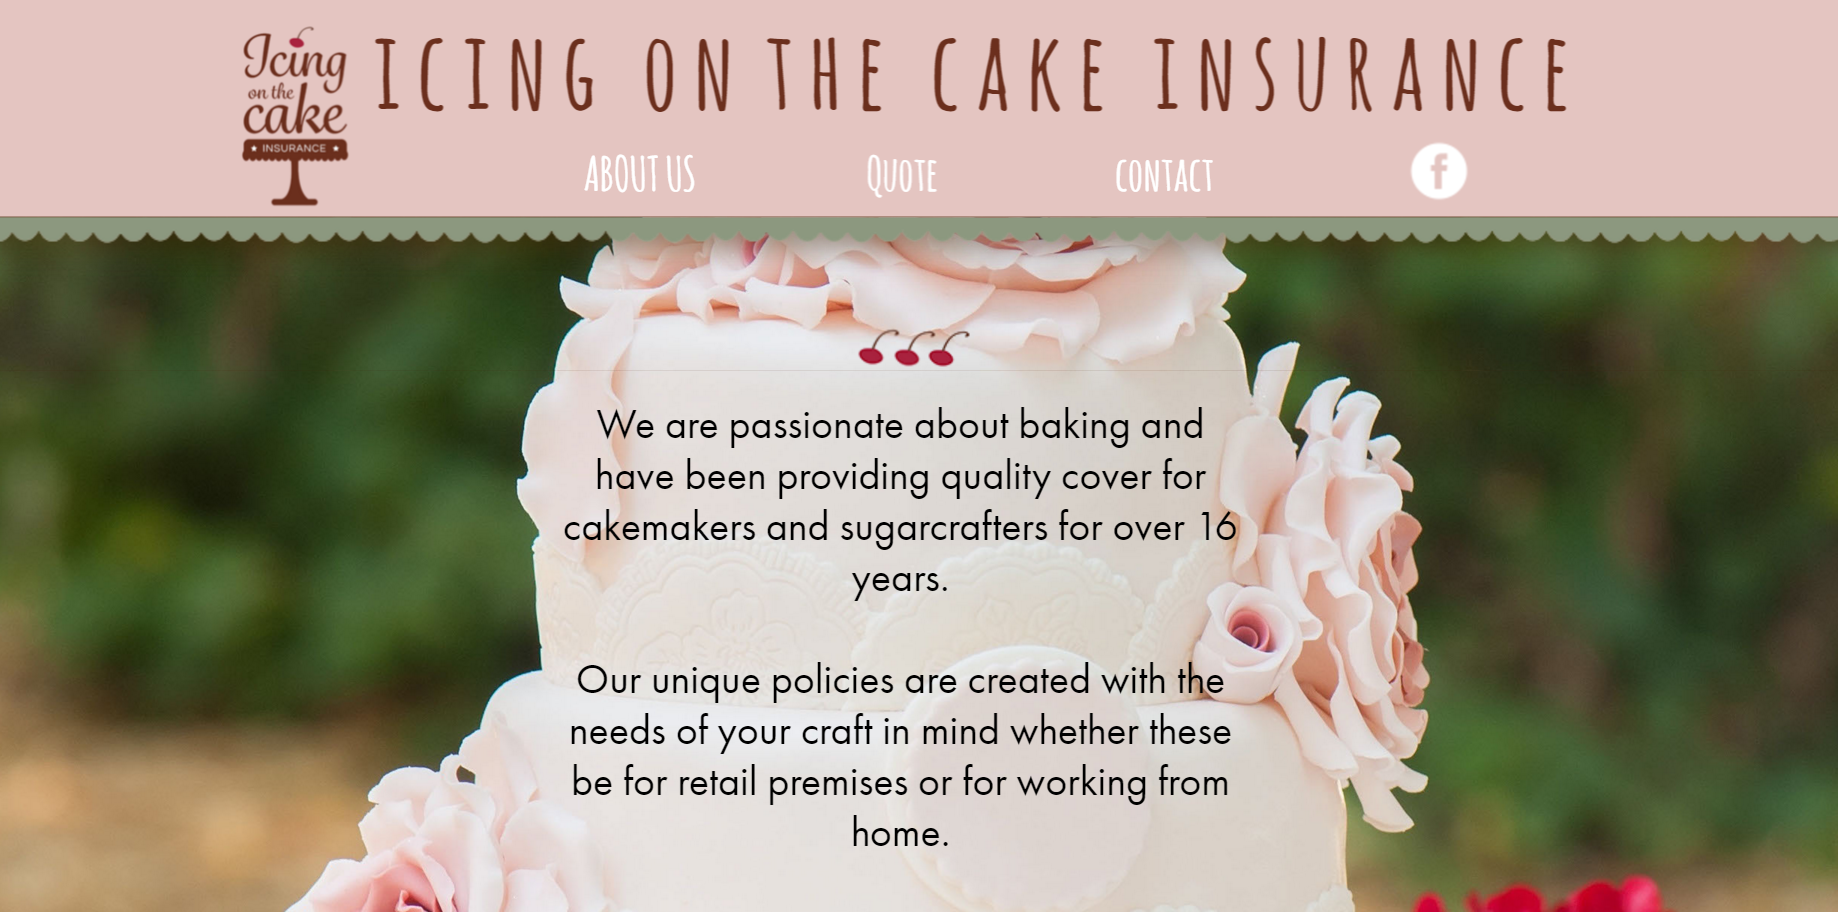 Icing on the Cake Insurance